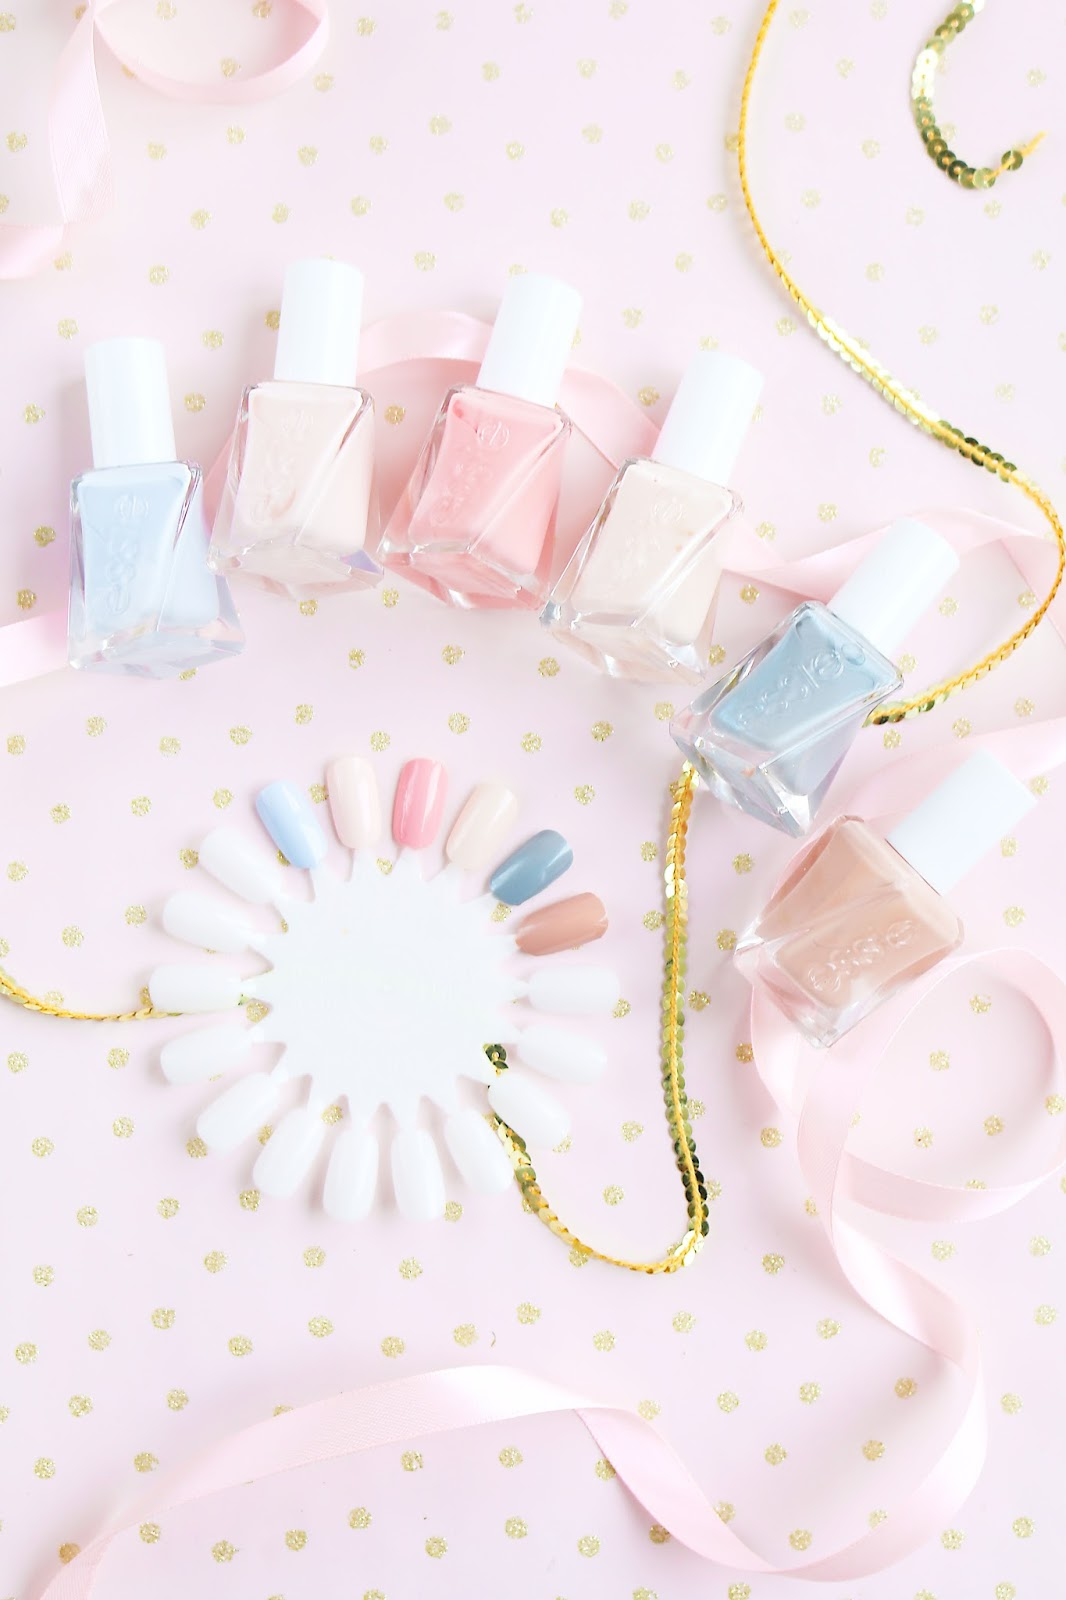 Beauty, Nails, Drugstore, Essie, essie ballet couture range, Drugstore Beauty, essie Gel Couture Range Ballet Nudes 2017